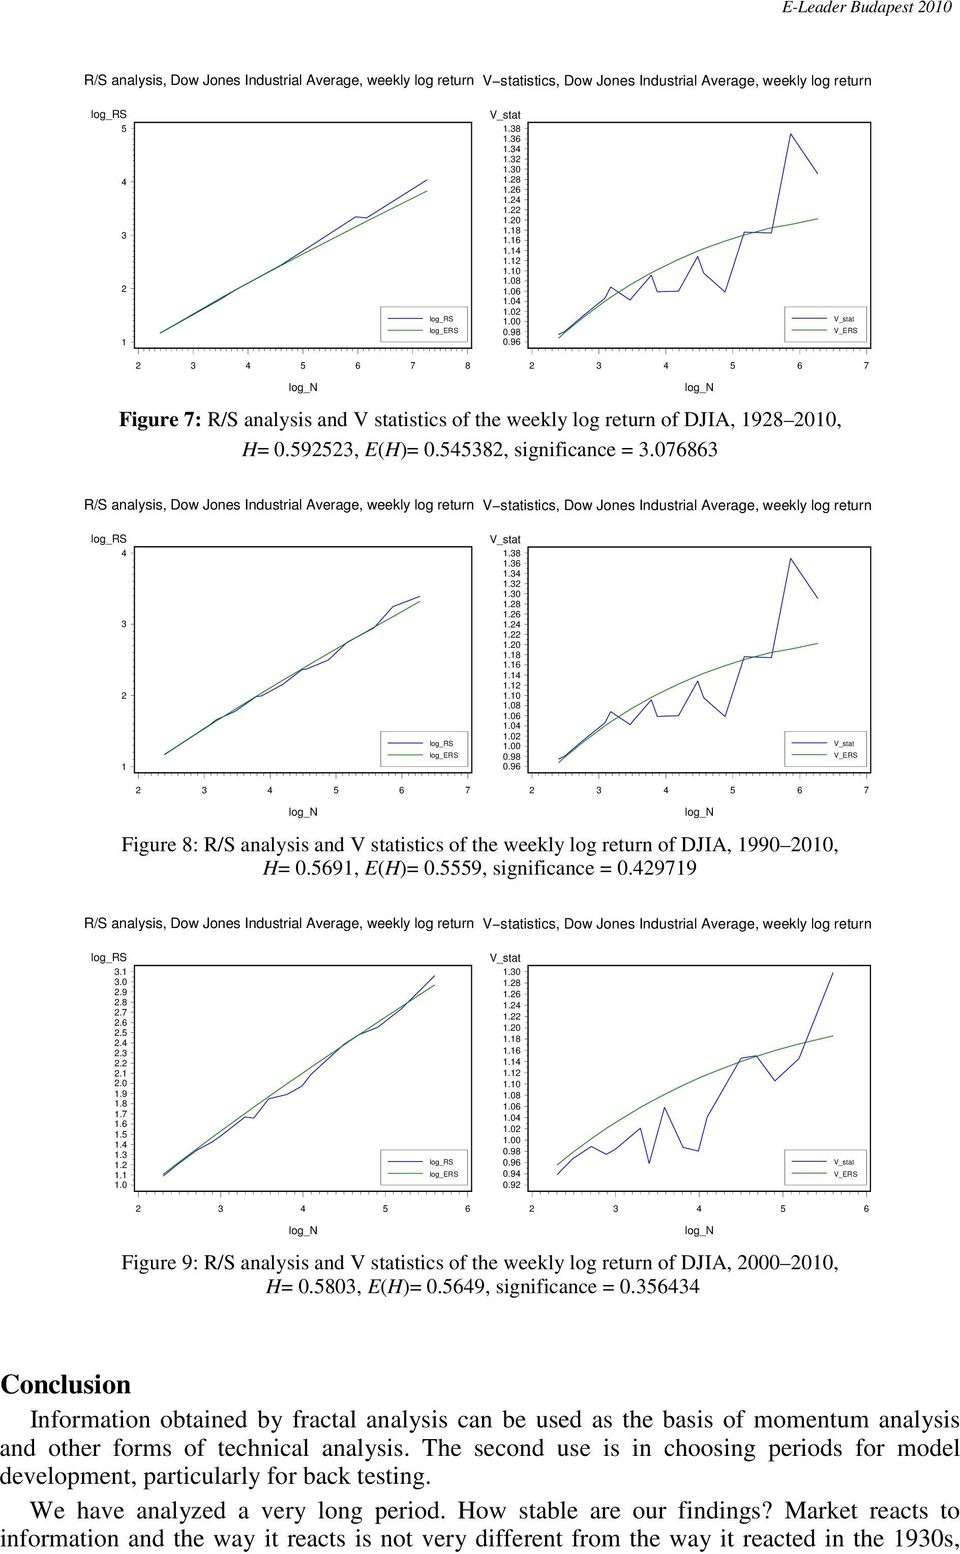 07686 R/S analysis, Dow Jones Industrial Average, weekly log return V statistics, Dow Jones Industrial Average, weekly log return.8.6...0.8.6..0.8.6. 5 6 7 5 6 7 Figure 8: R/S analysis and V statistics of the weekly log return of DJIA, 990 00, H= 0.